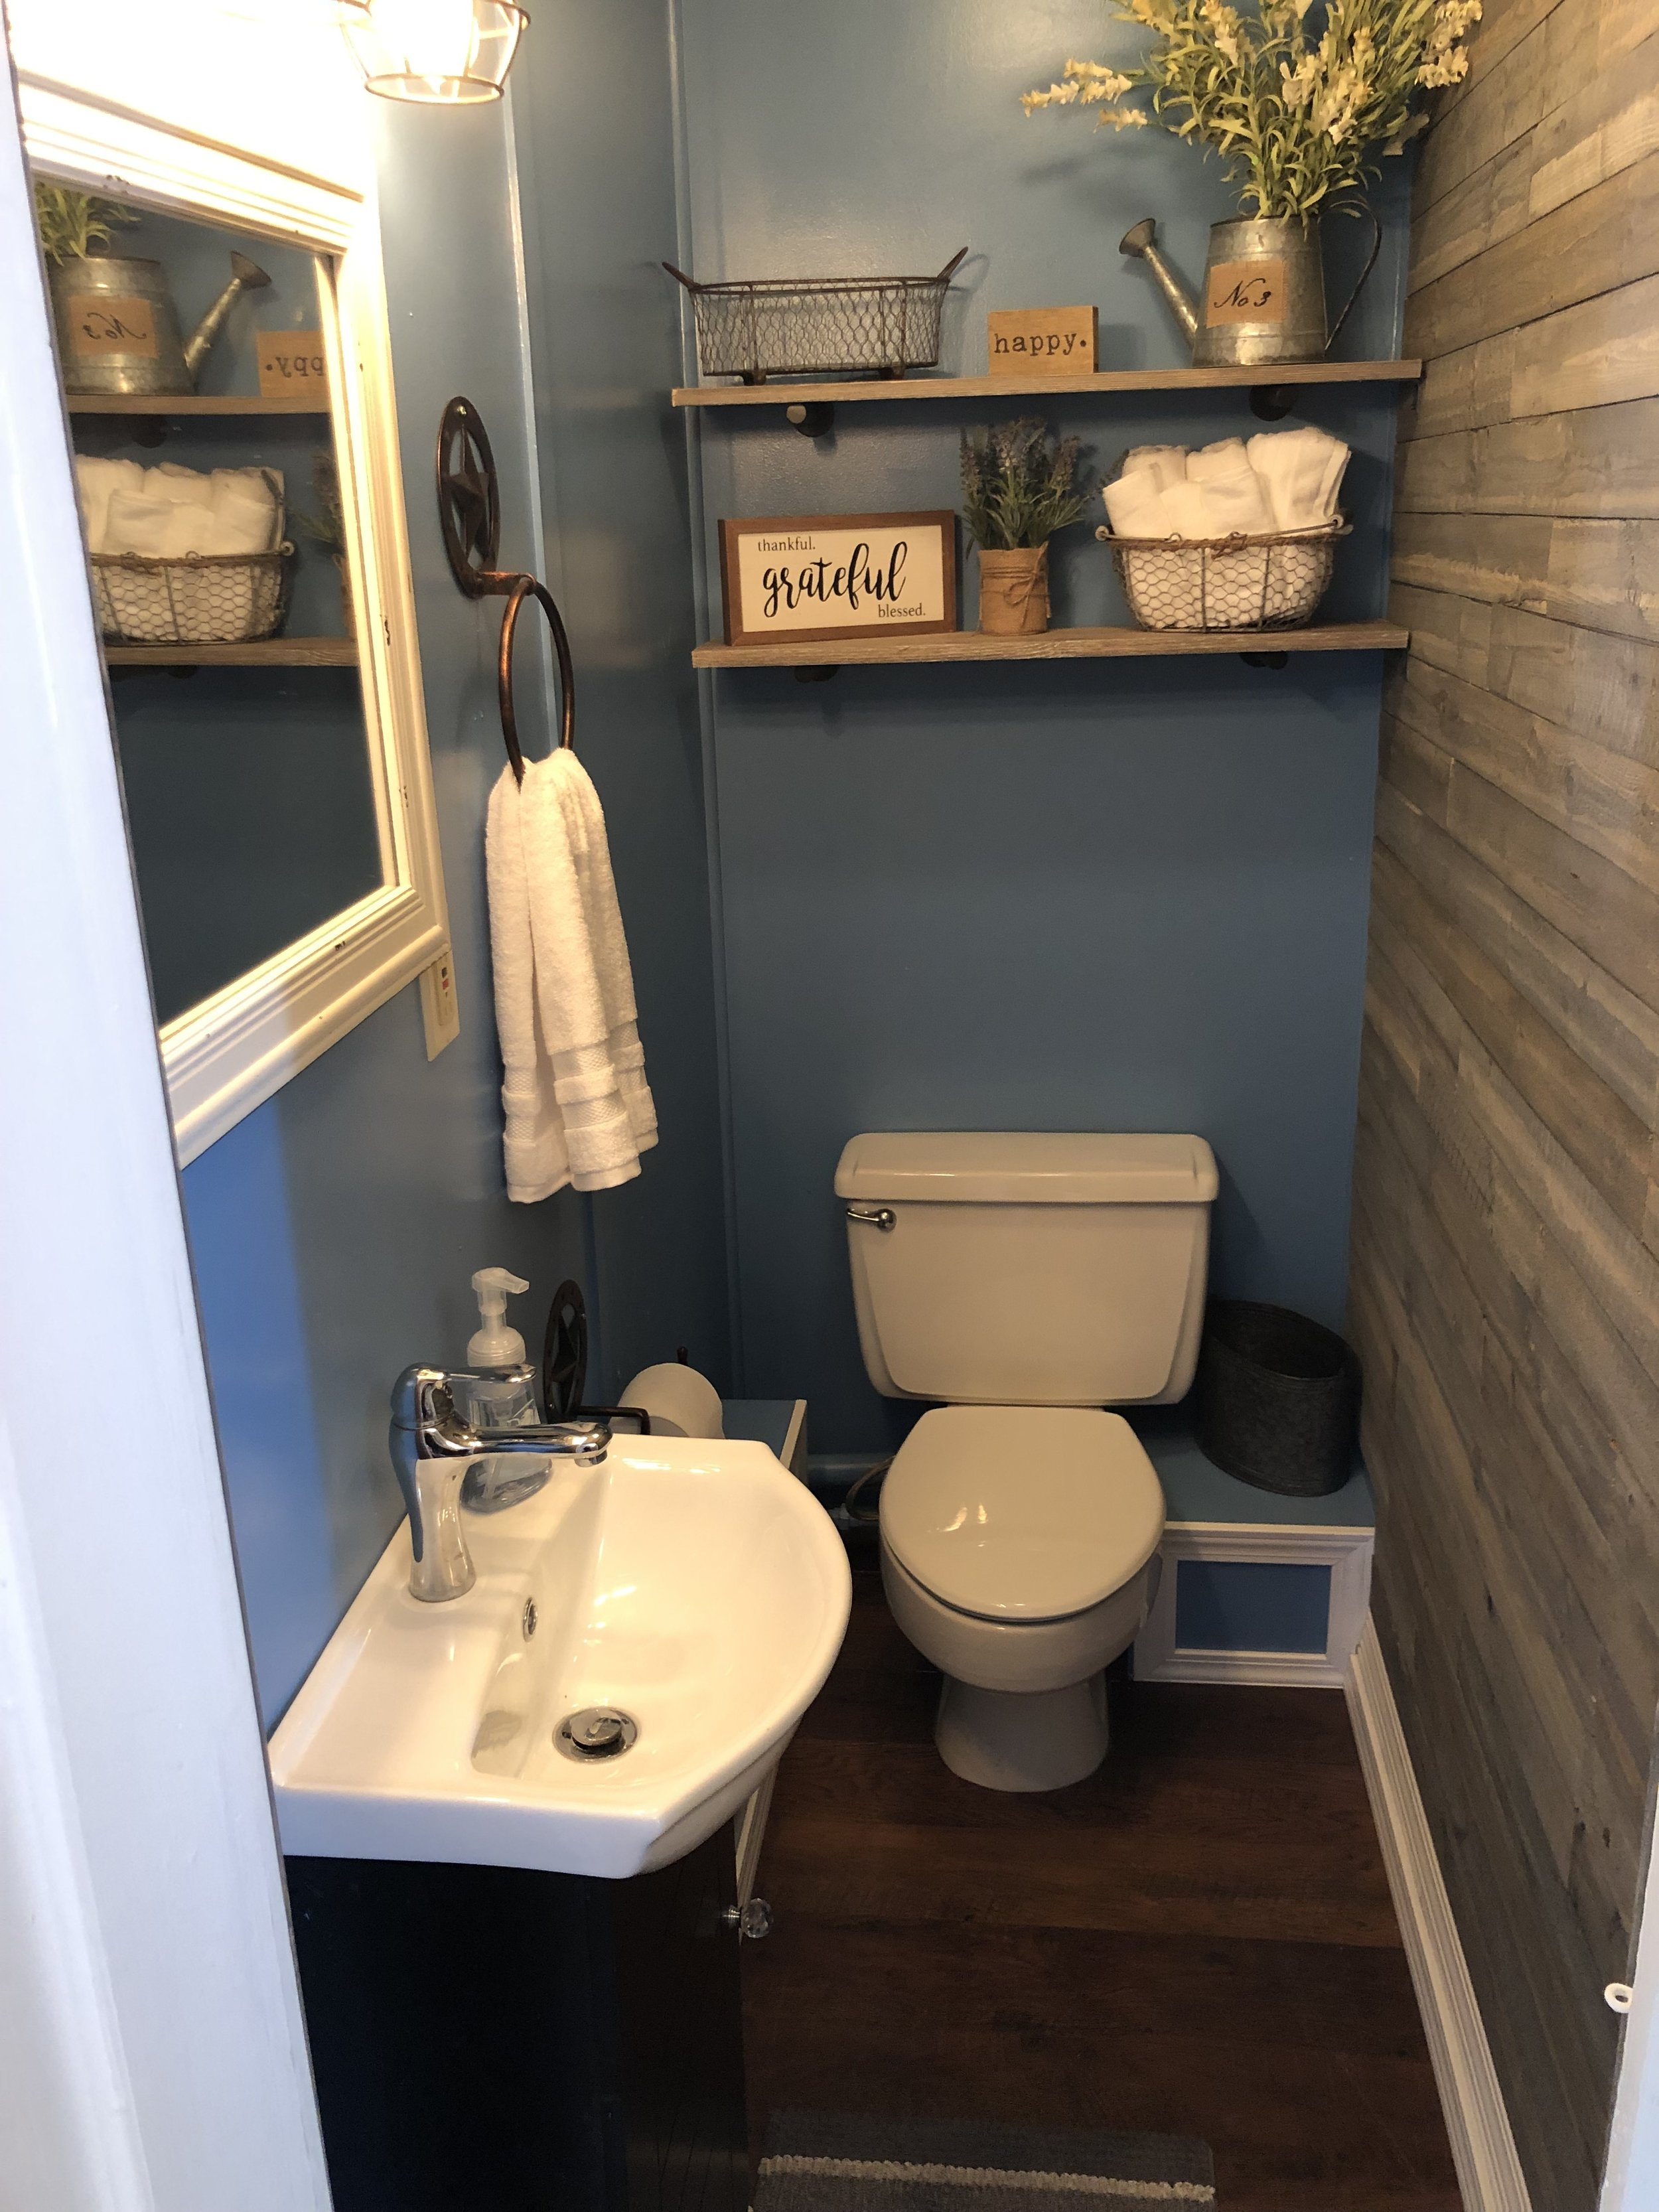 A cozy toilet room, separate from the larger shower room.